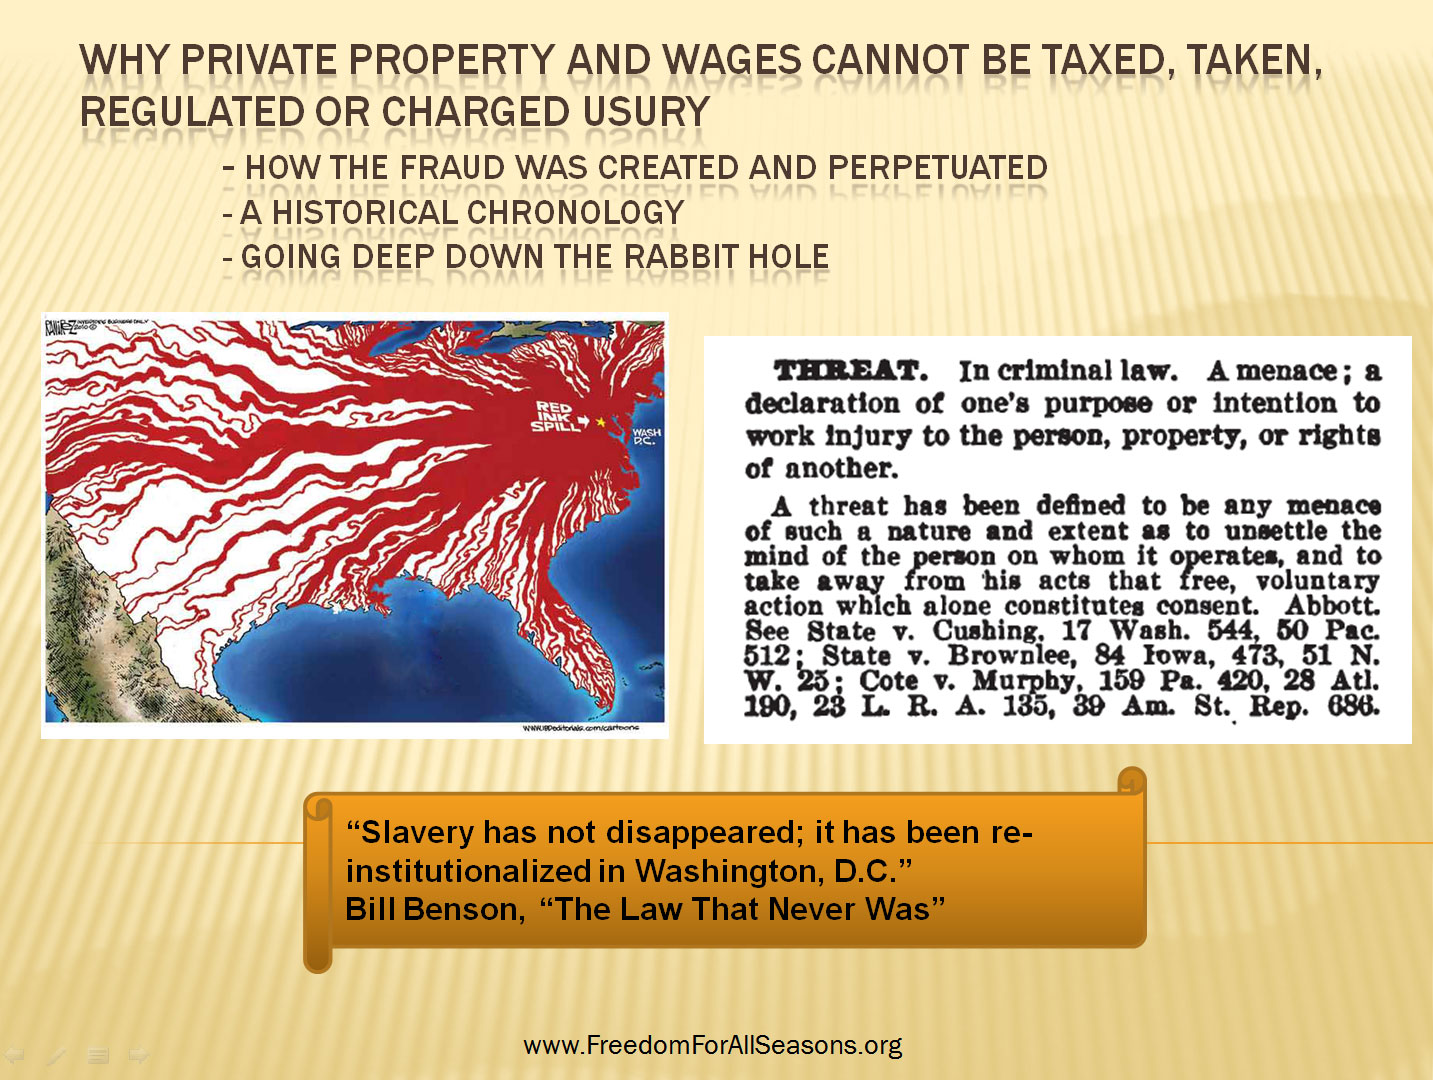 Why Private Property Cannot Be Taxed